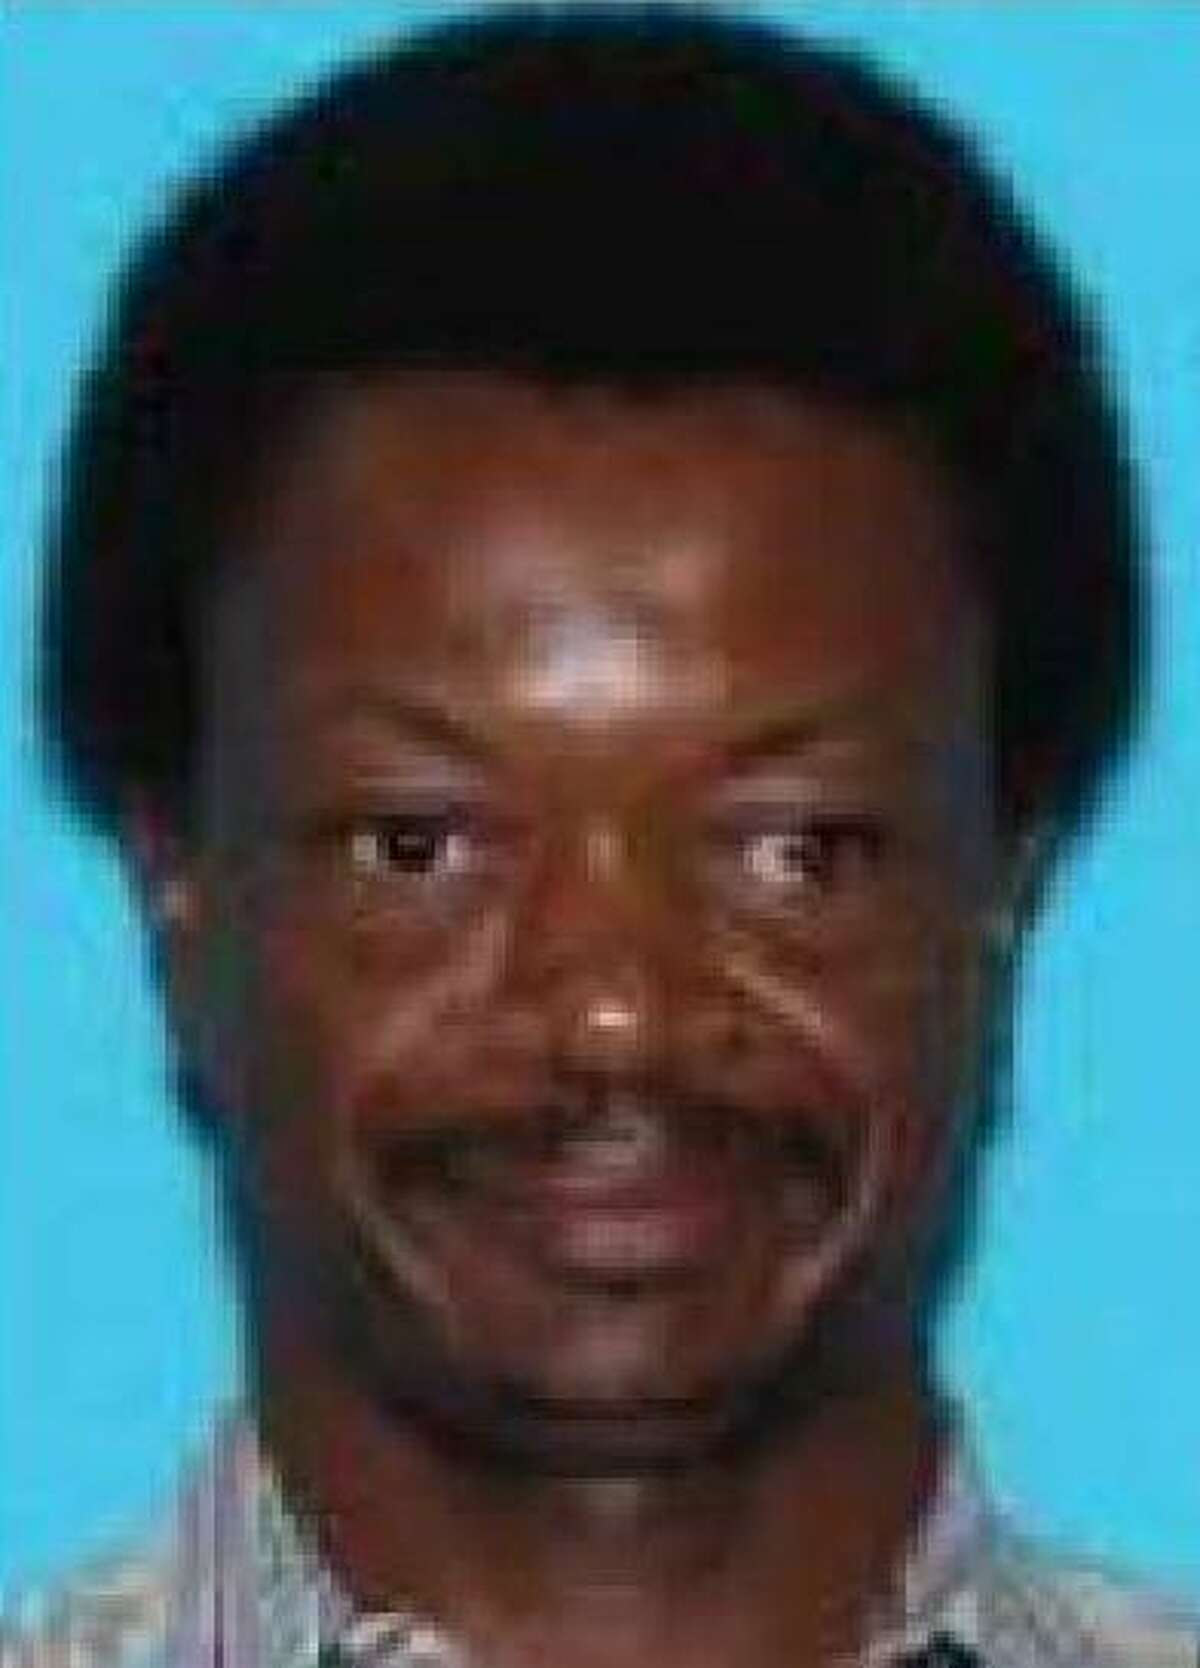 Donnell McGinnis, 43, who has medical issues, has been missing from his home in the city of Montgomery since May 11.